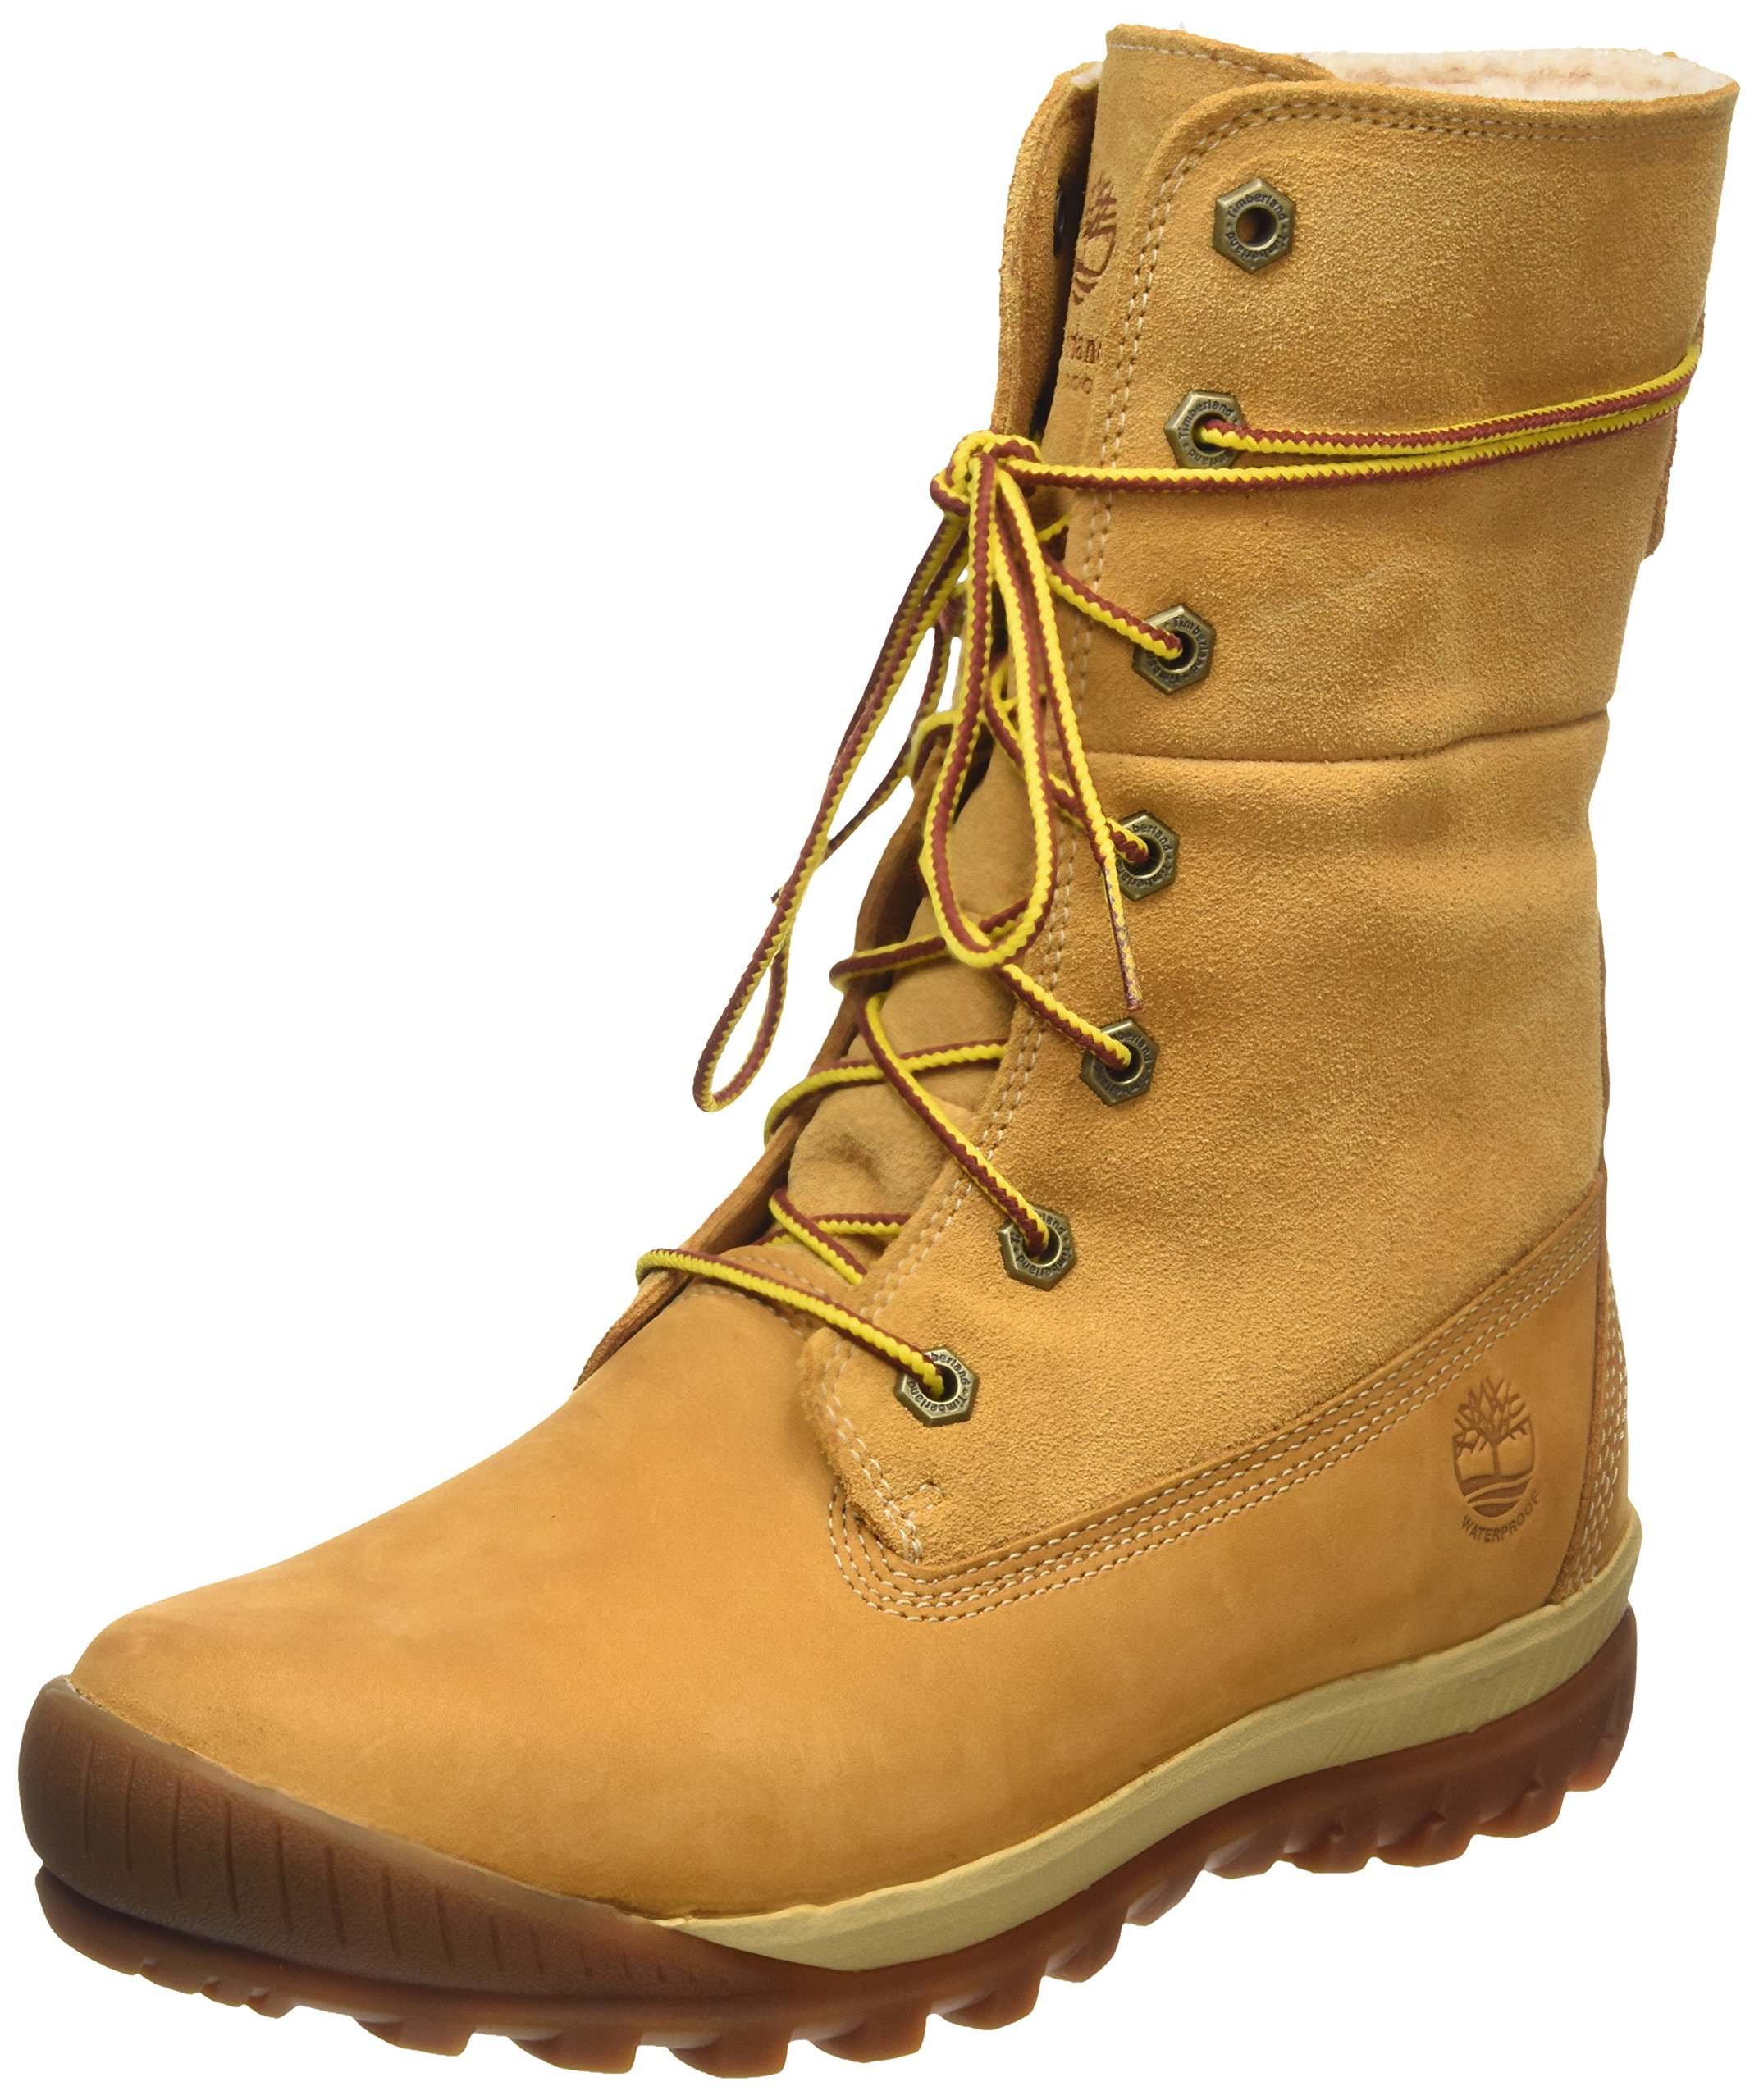 timberland woodhaven teddy women 39 s snow boots braun wheat. Black Bedroom Furniture Sets. Home Design Ideas